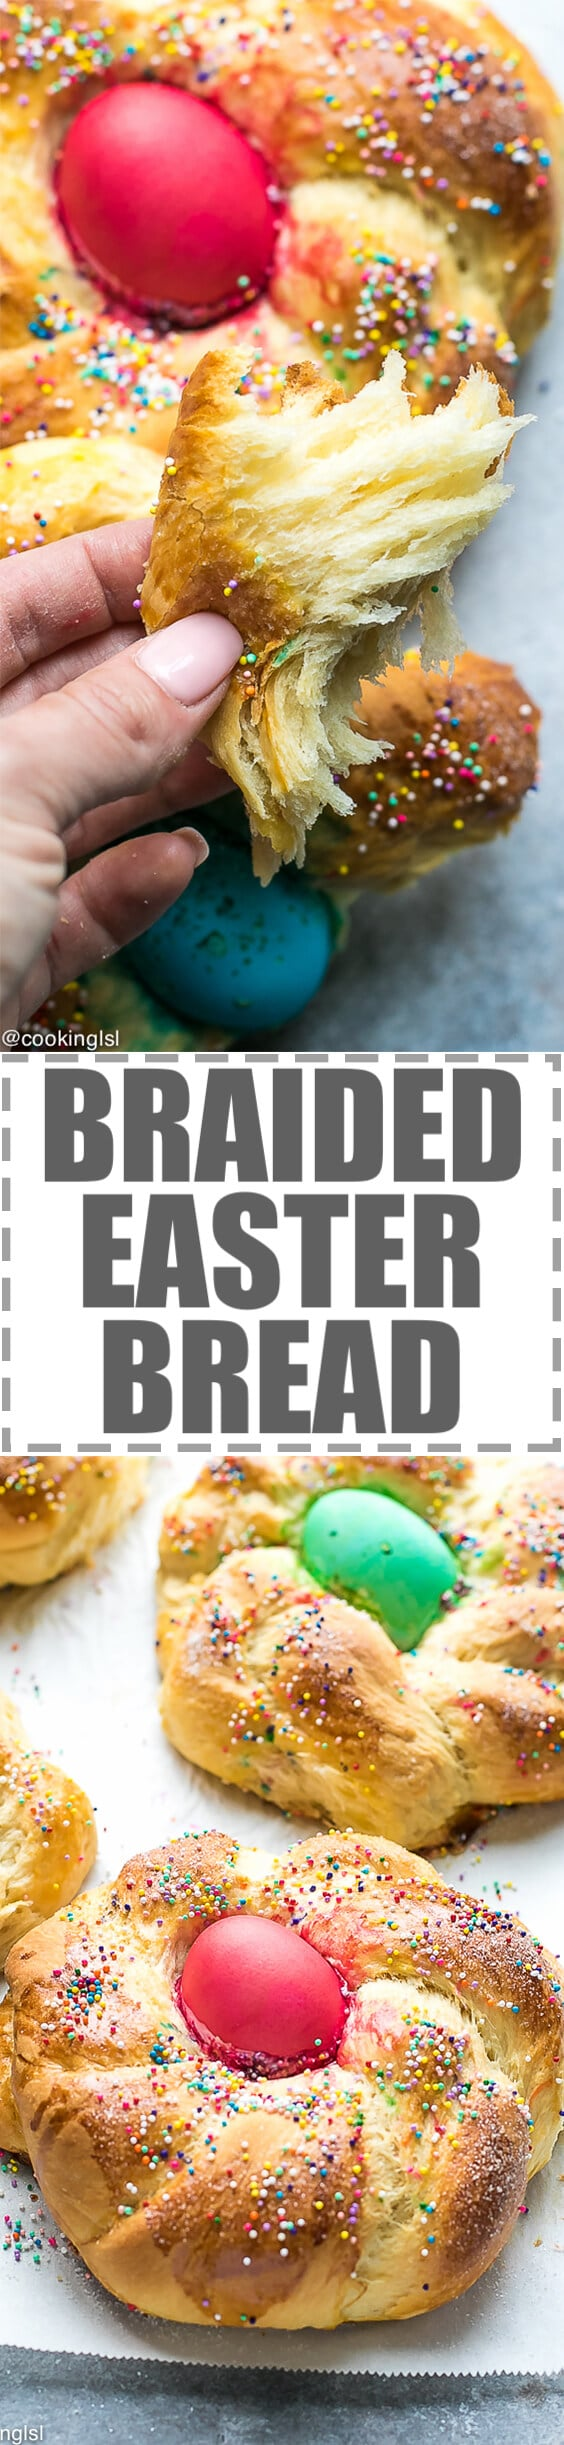 Mini Braided Easter Bread Recipe - sweet easter breads with a colored egg in the middle. Cute, festive and easy to make. Soft, stringy bread that pulls away, flavored with vanilla, lemon and orange zest and topped with sugar for a sweet, crunchy finish. #Easter #Easterbread #easterrecipe